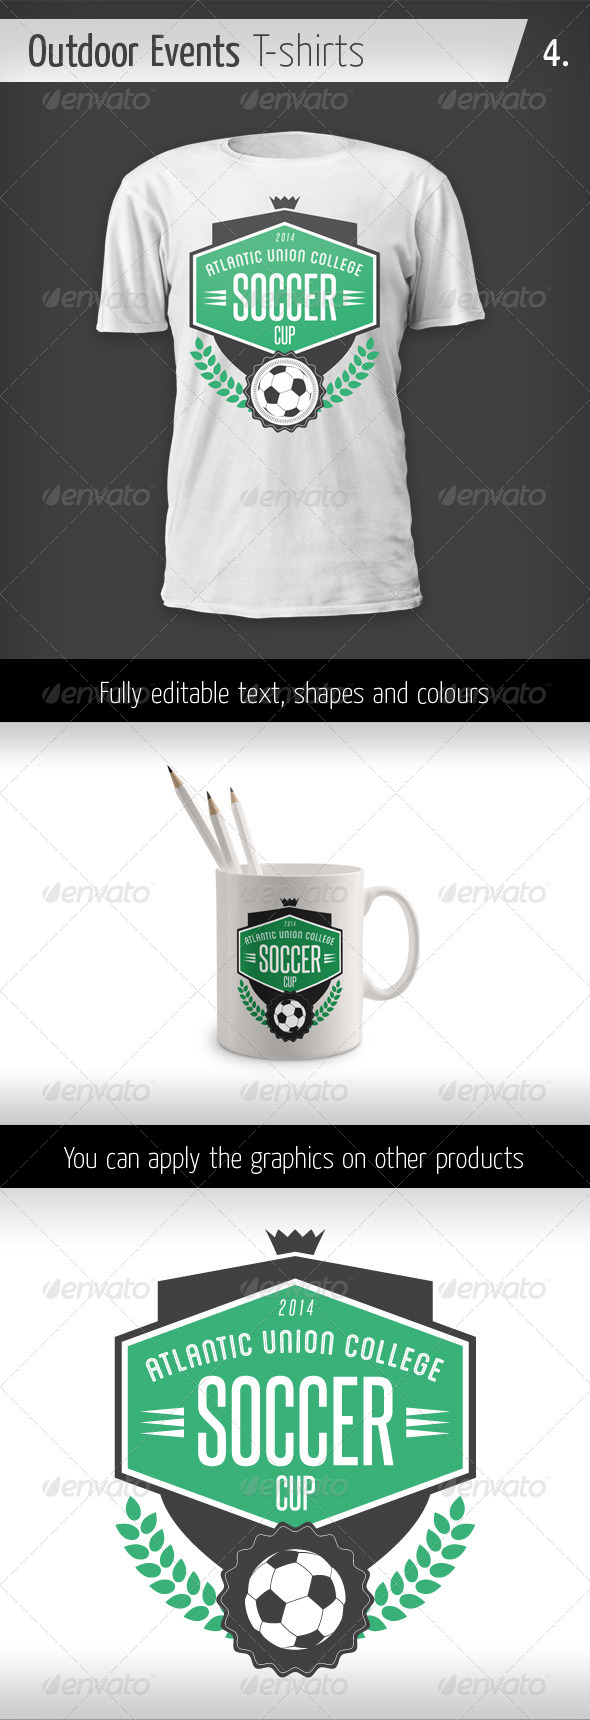 Outdoor Events T-shirts Soccer Cup